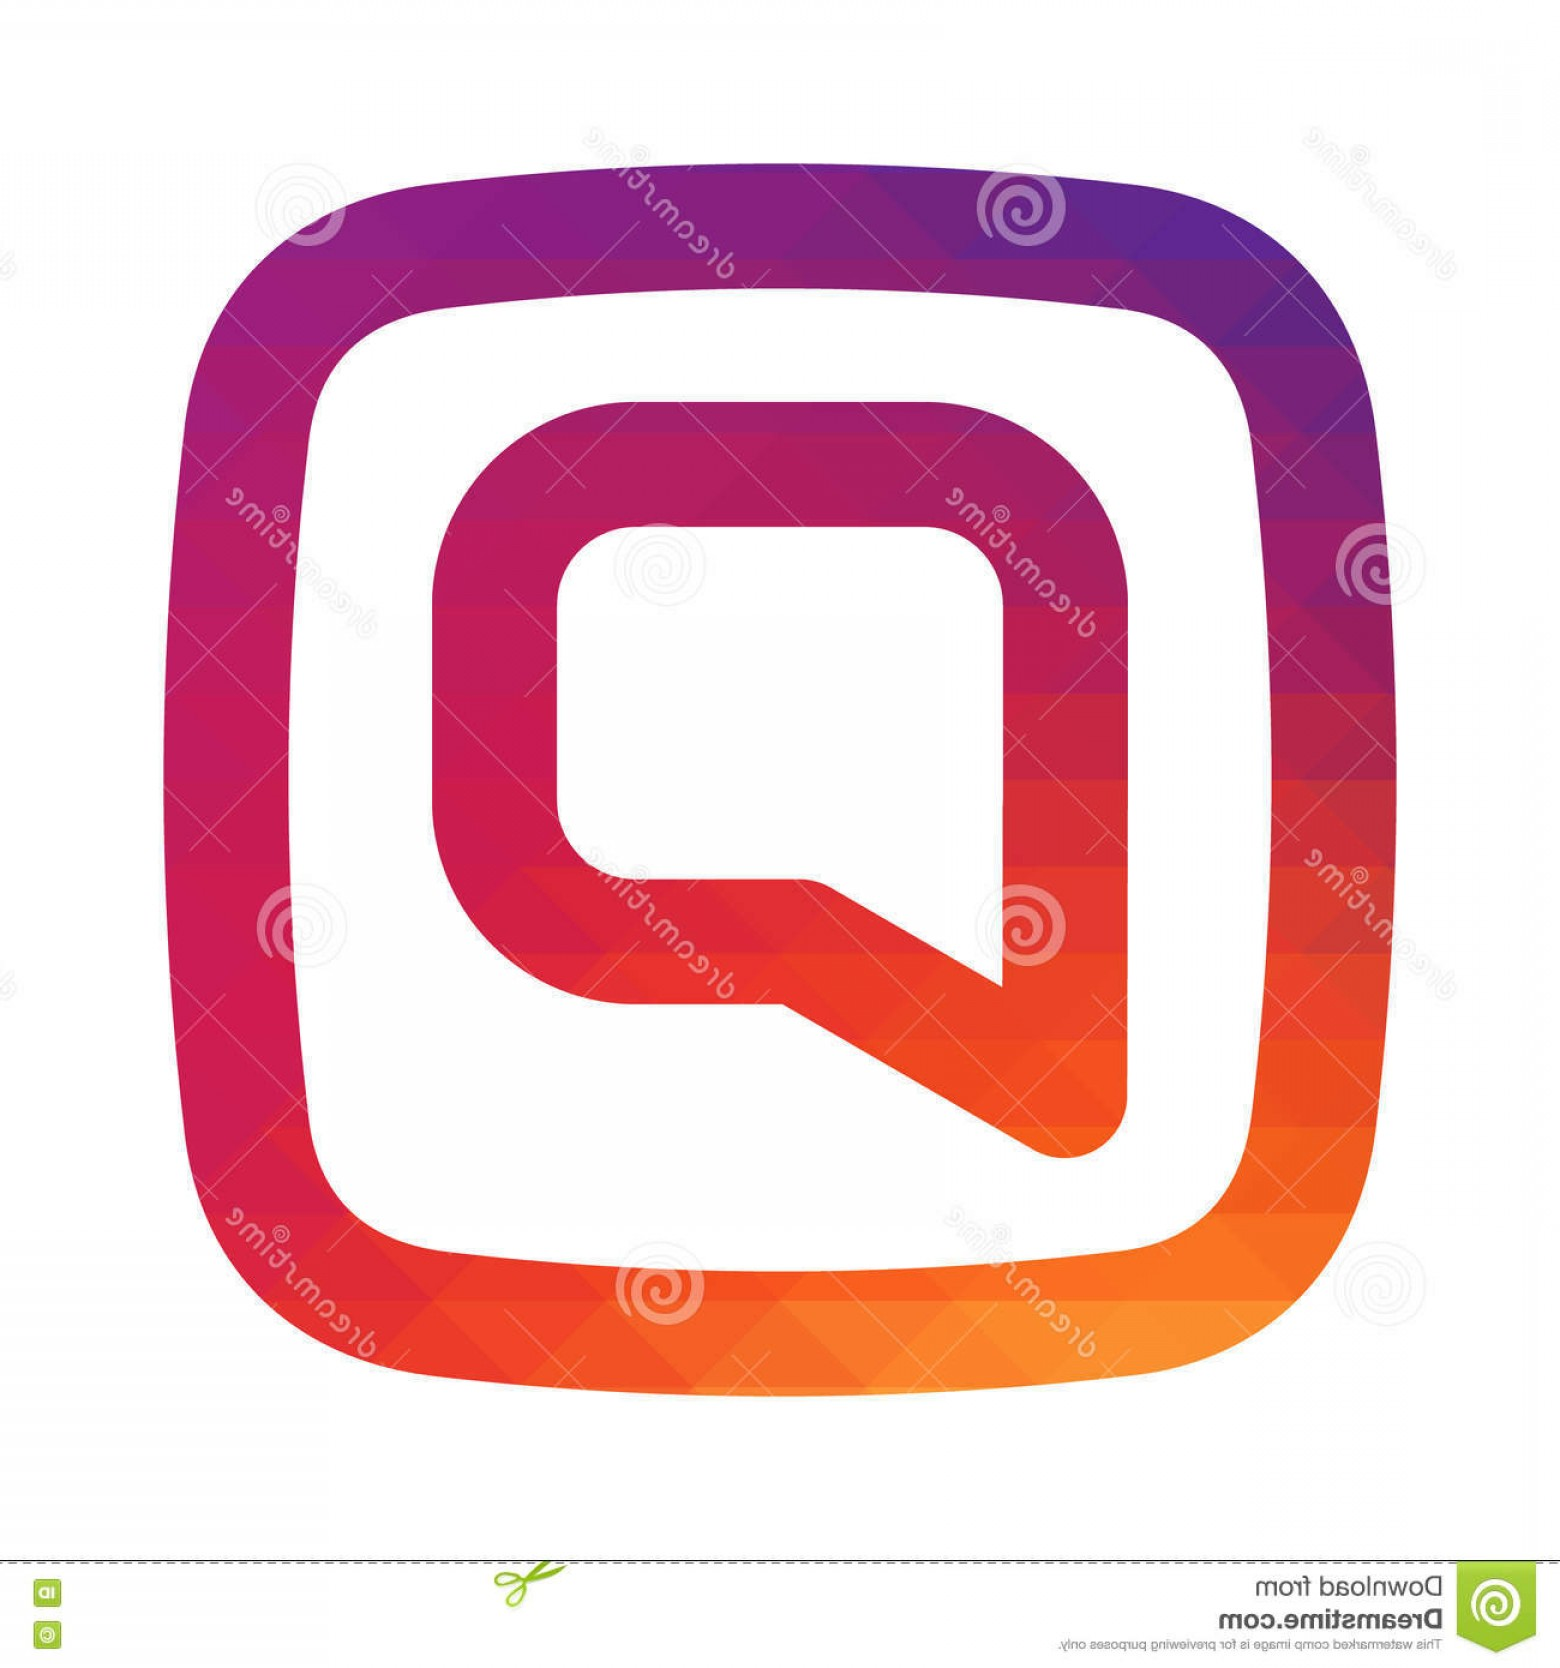 Instagram App Icon Vector: Stock Illustration Smooth Color Gradient Comments Instagram Icon Your Social Media App Design Vector Illustration Image